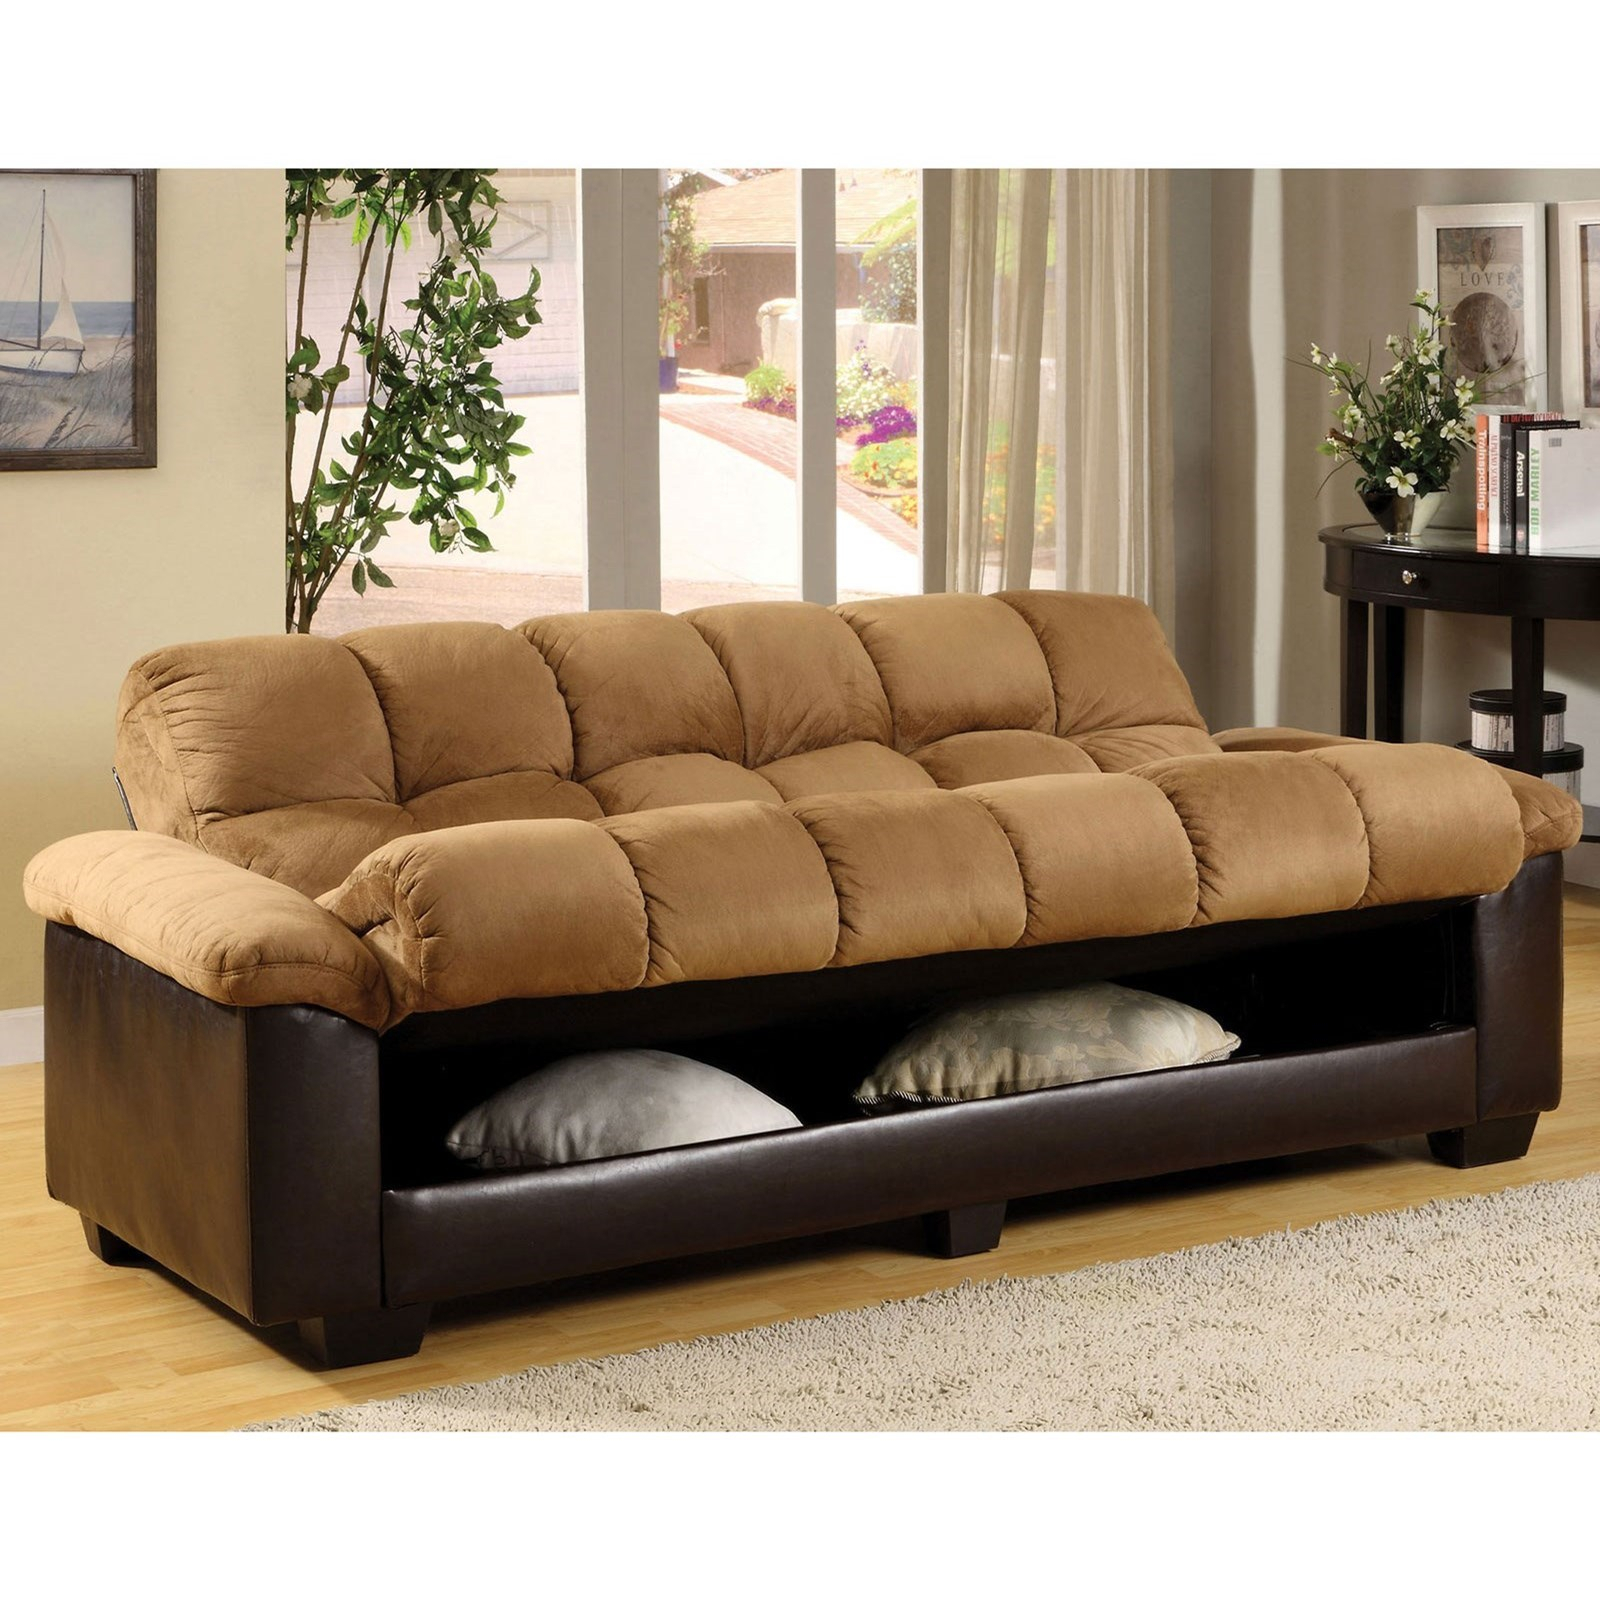 Furniture Of America Brantford Cm6685 Pu Ca Pk Convertible Throughout Convertible Sofas (View 9 of 15)